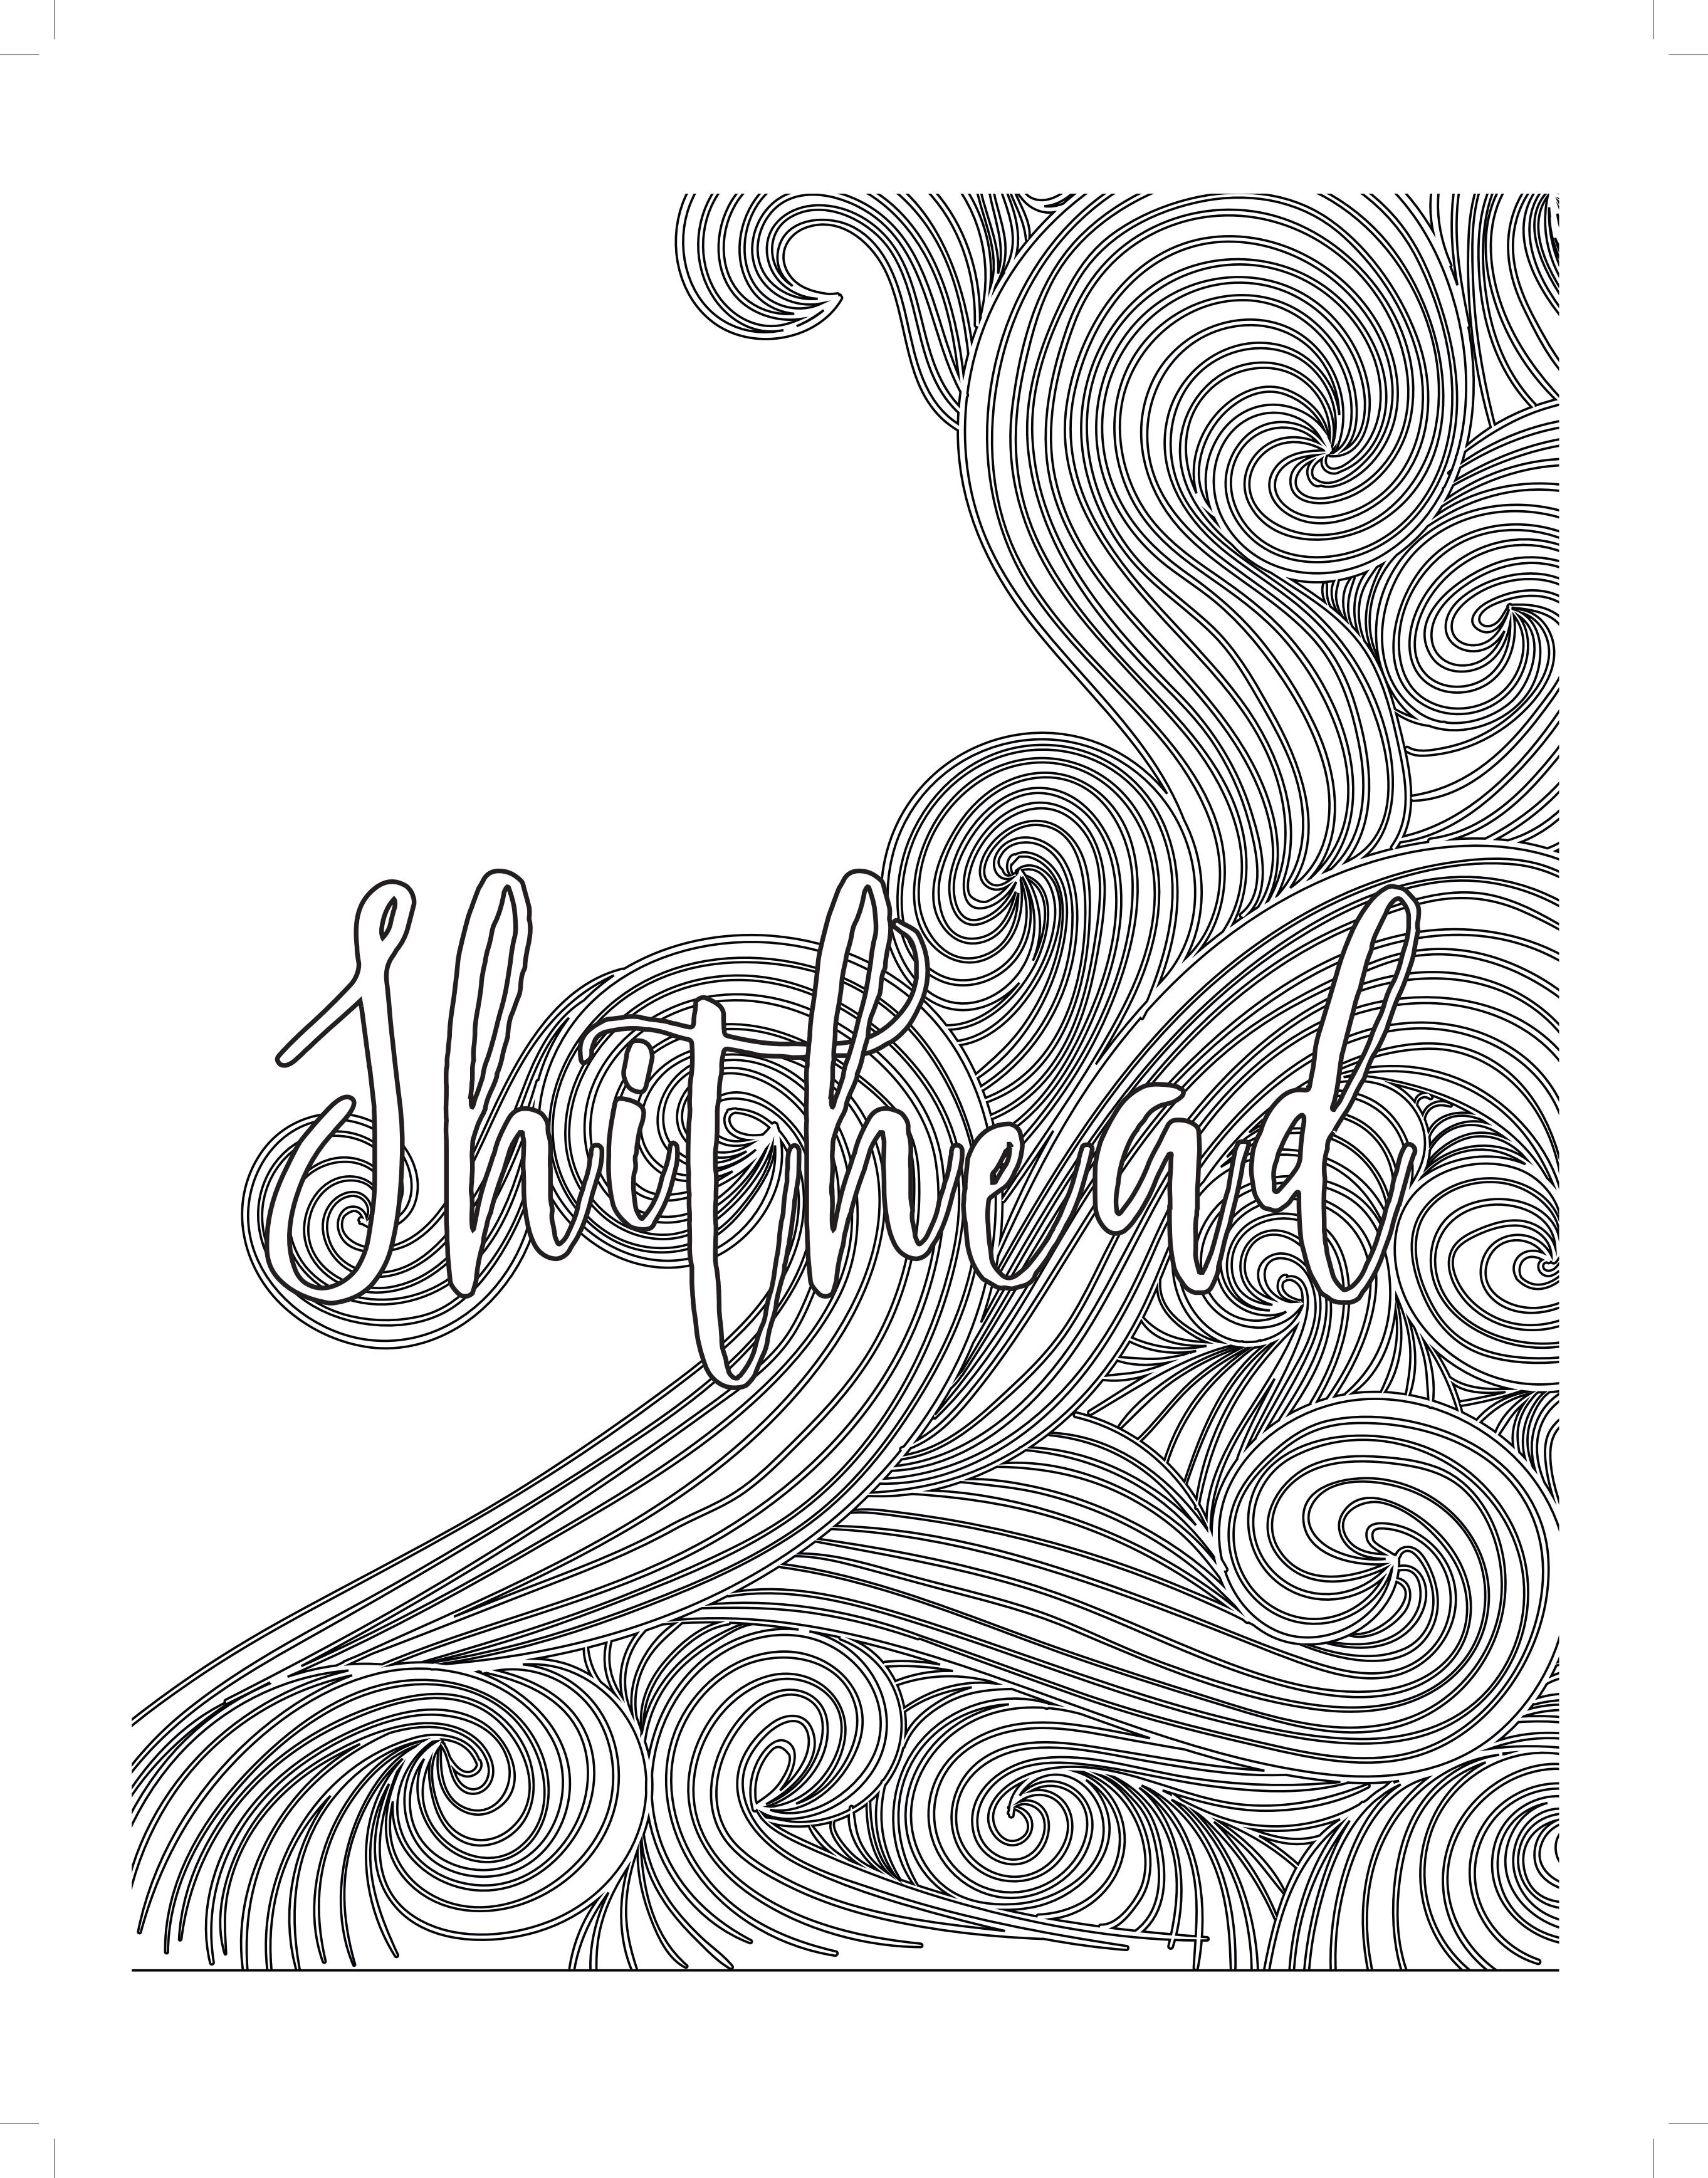 Word Coloring Pages For Adults At Getdrawings Com Free For